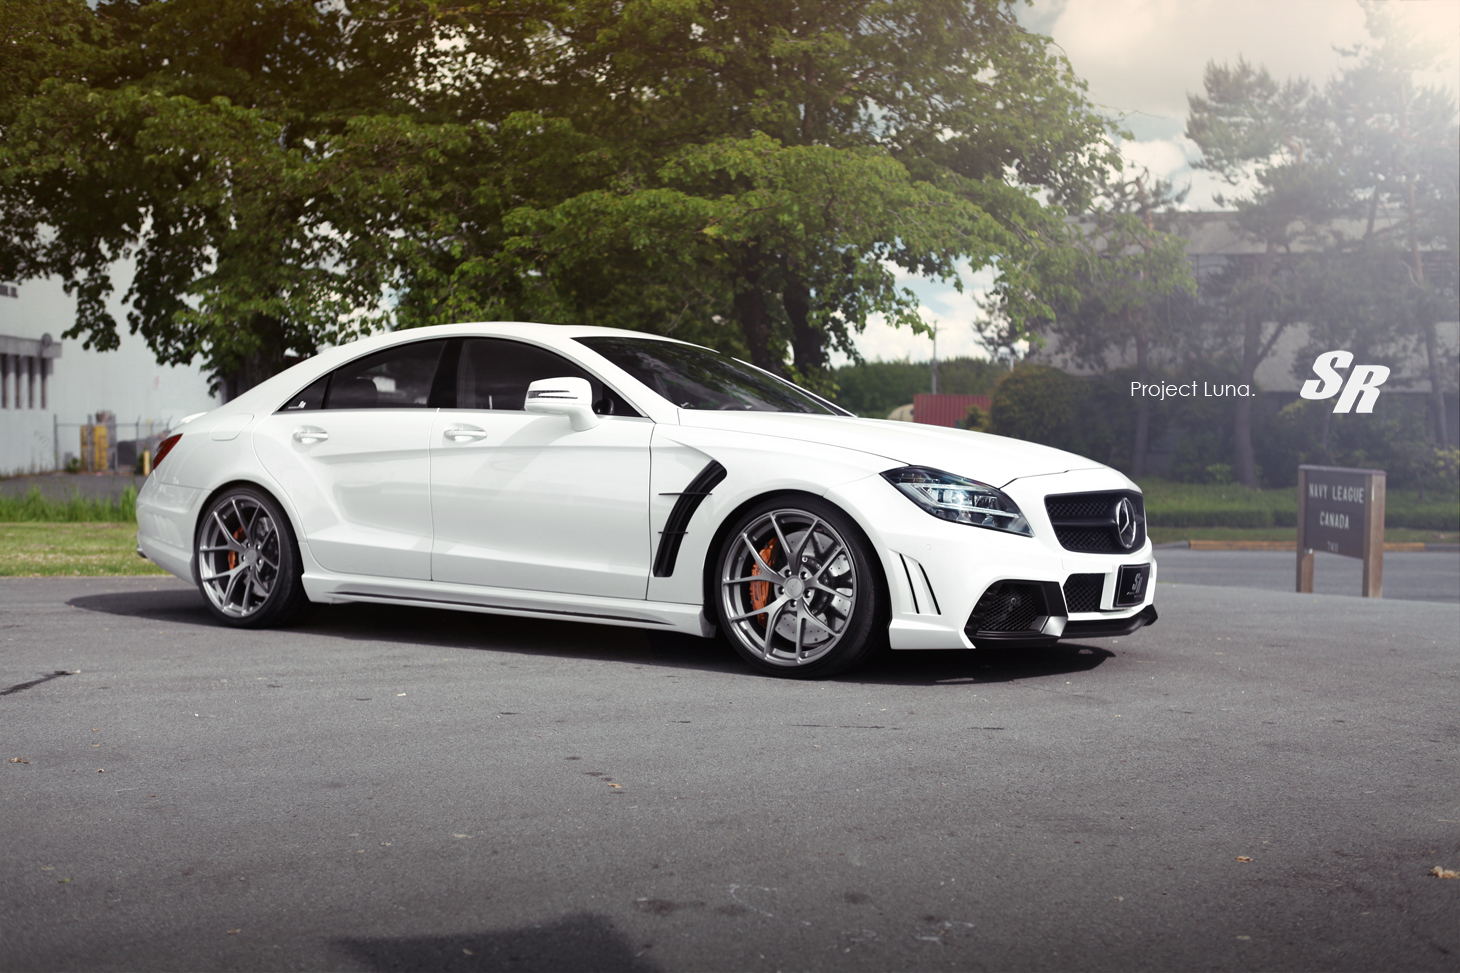 Wald Mercedes Cls63 Amg Touched By Sr Auto Autoevolution 2008 Benz Cls 550 Wide Kit